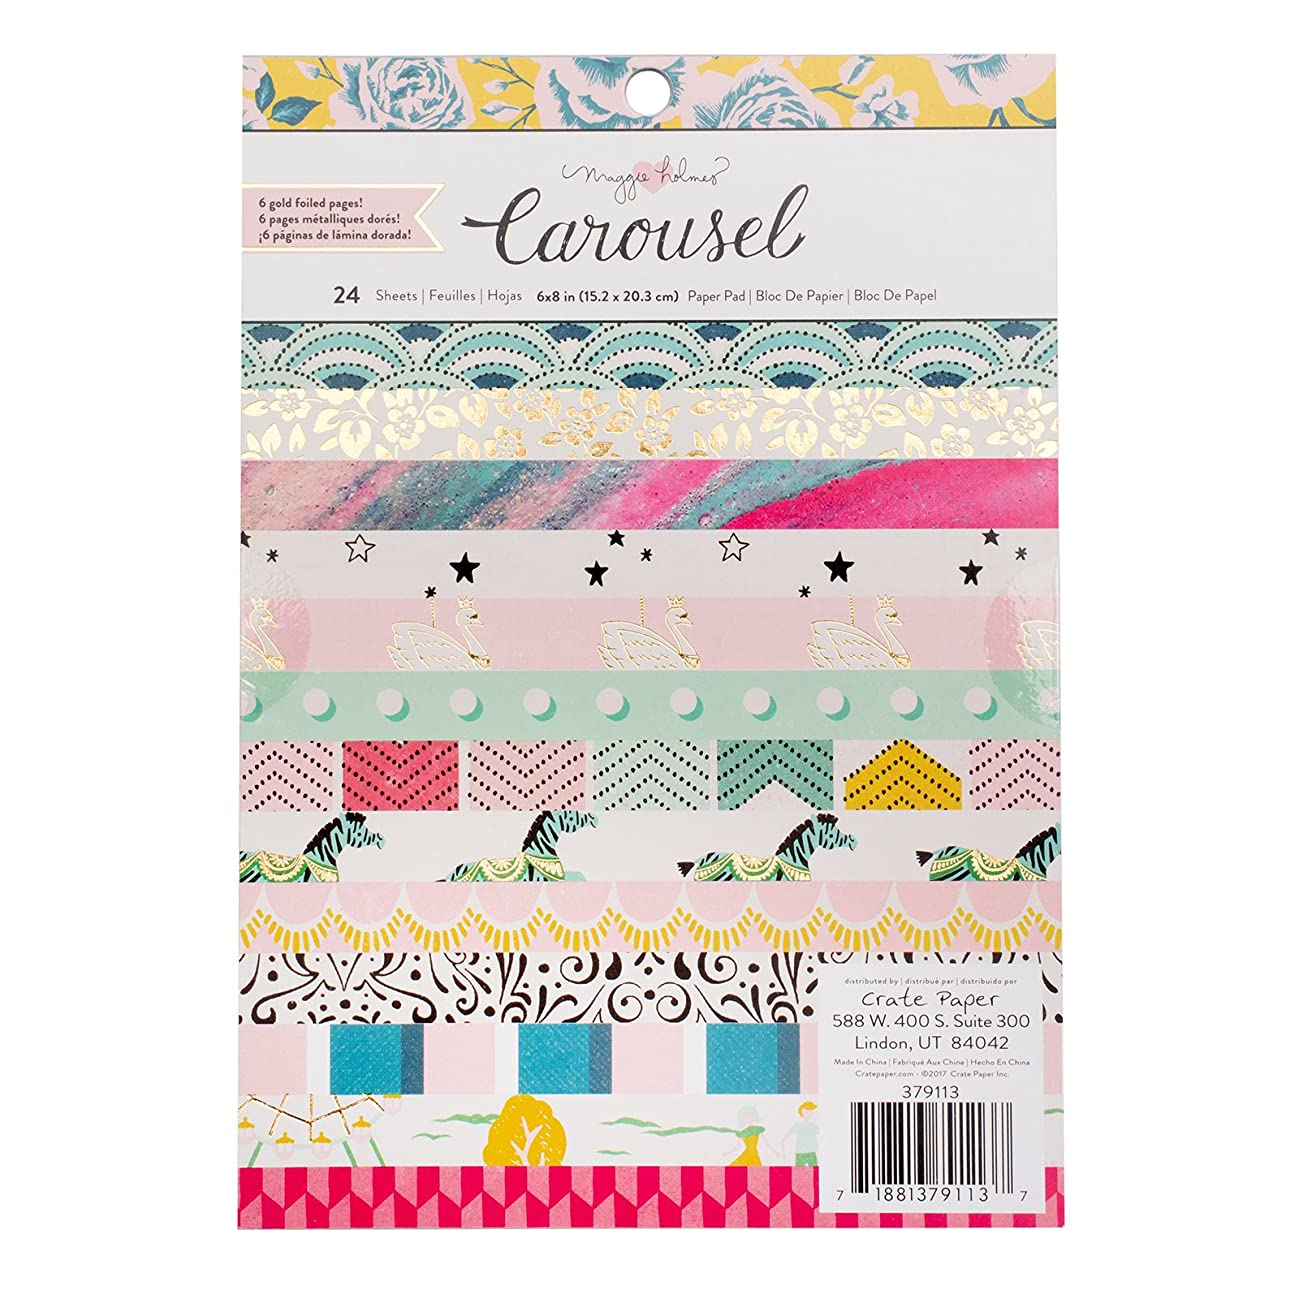 American Crafts Maggie Holmes Carousel 24 Sheet 6 x 8 Inch Paper Pad Gold Foil